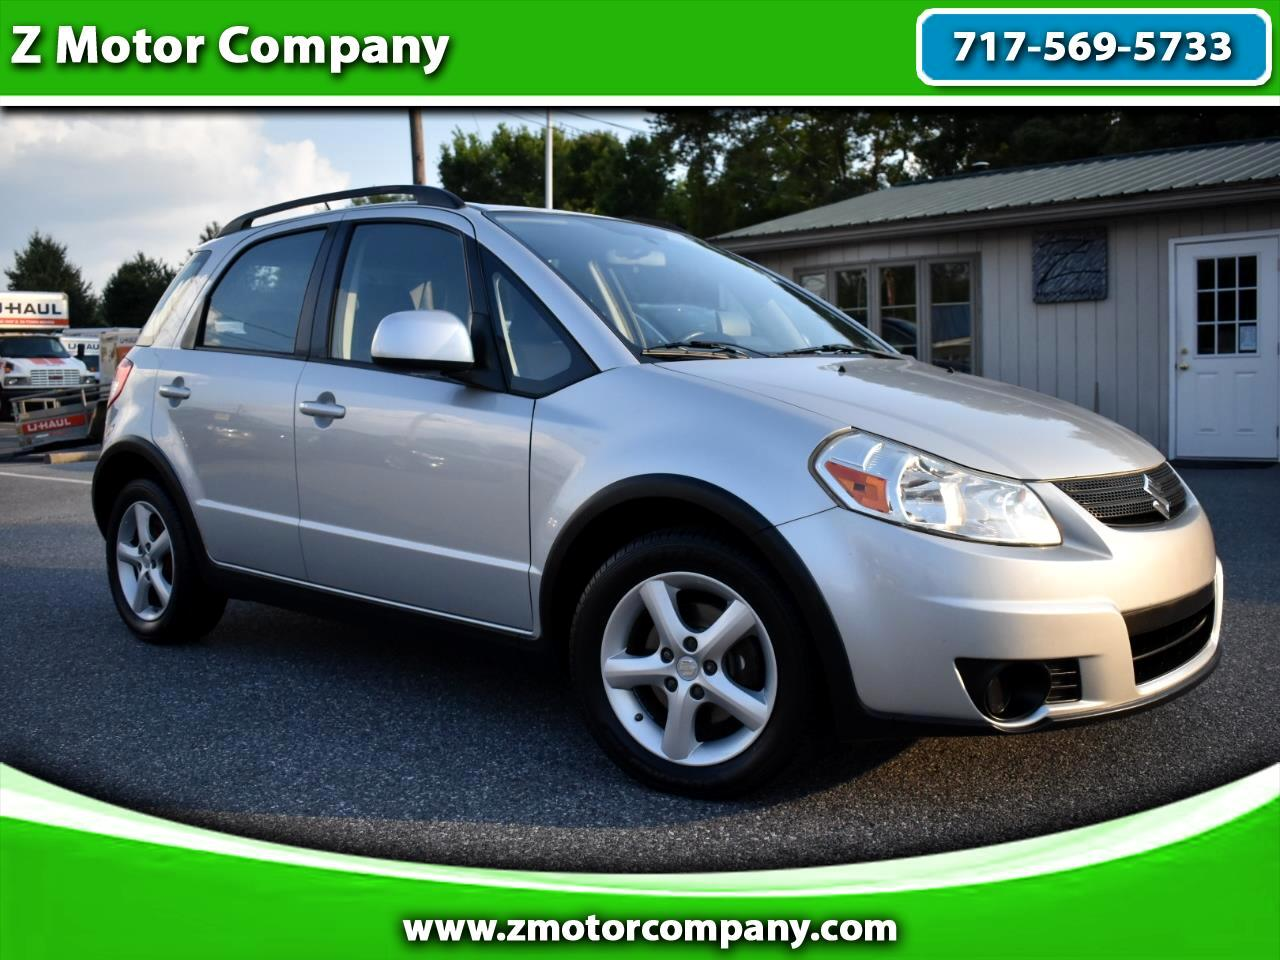 2009 Suzuki SX4 5dr HB Man Technology Pkg AWD